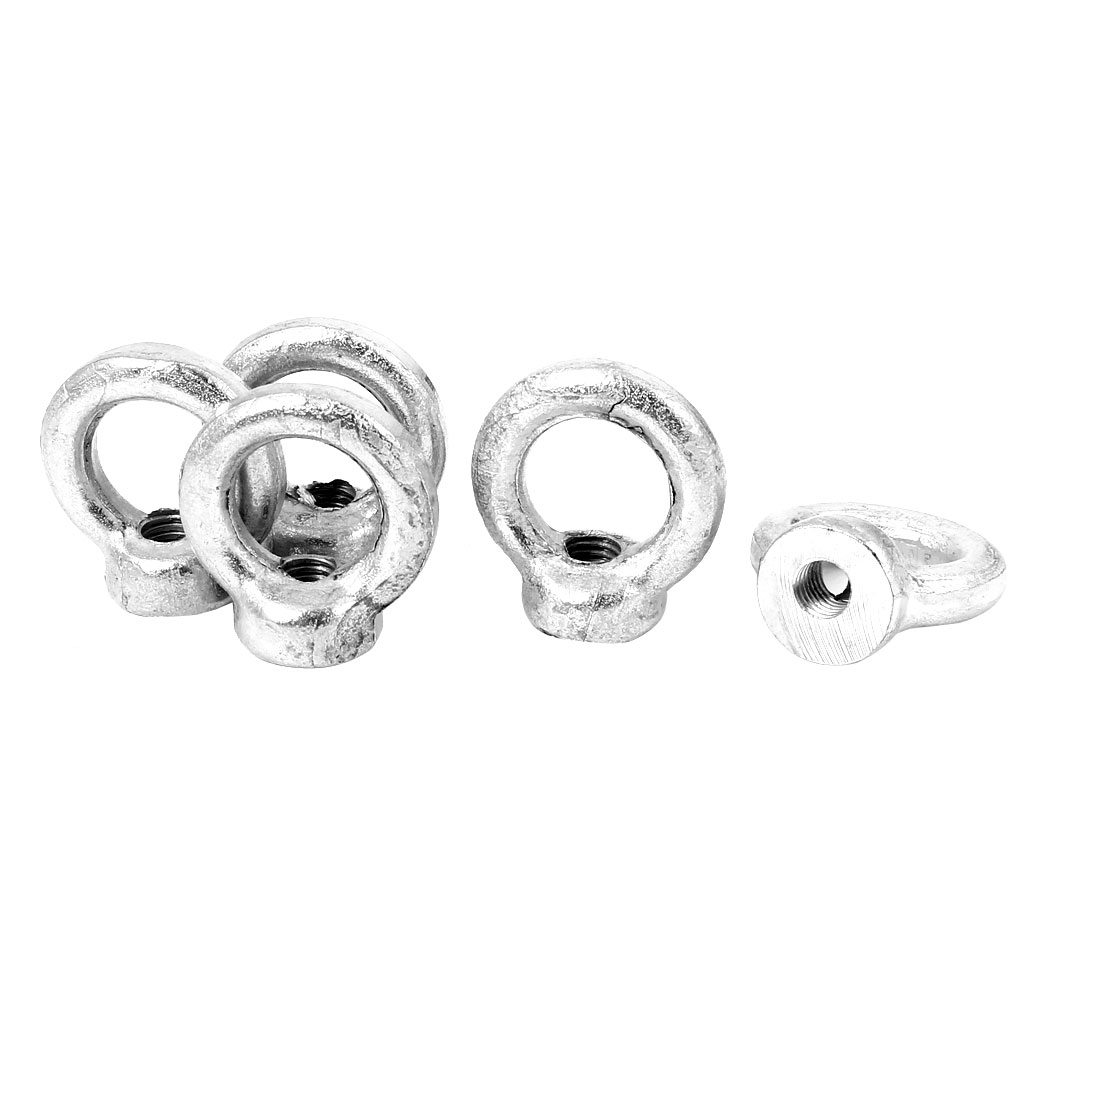 M8 Female Thread Carbon Steel Lifting Eye Nuts Ring Silver Tone 5 Pcs